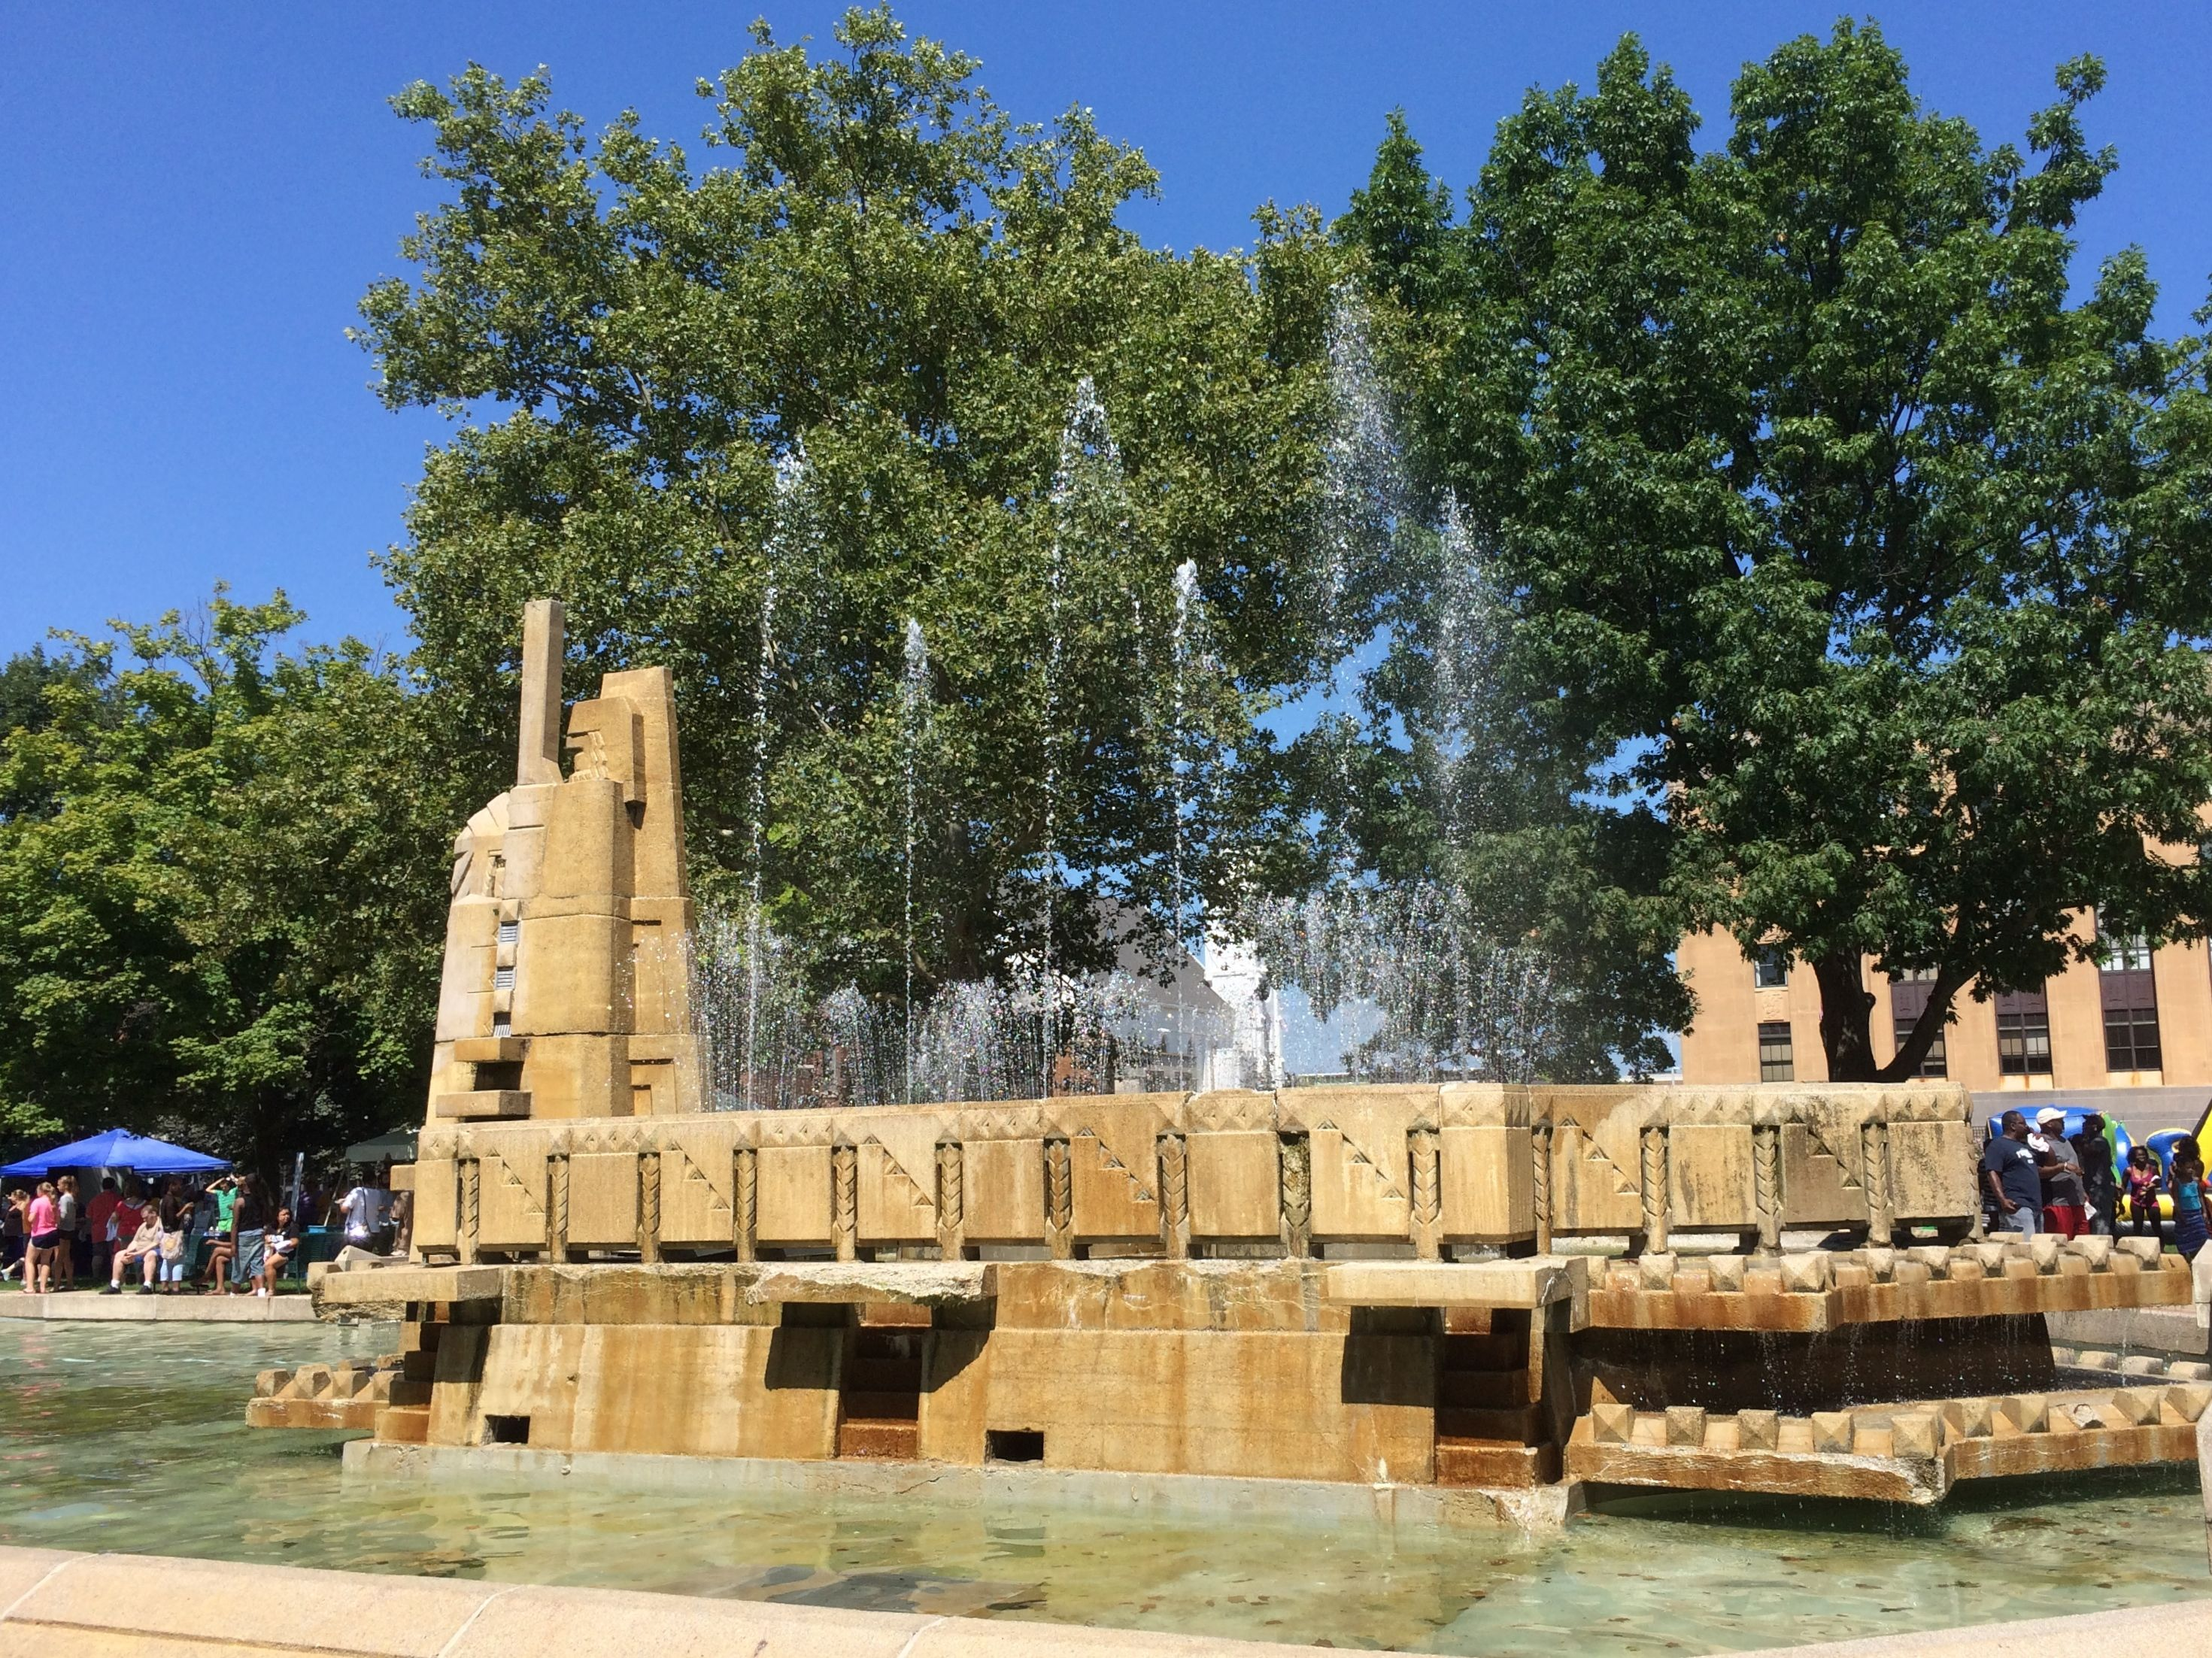 The Fountain of the Pioneers in Bronson Park